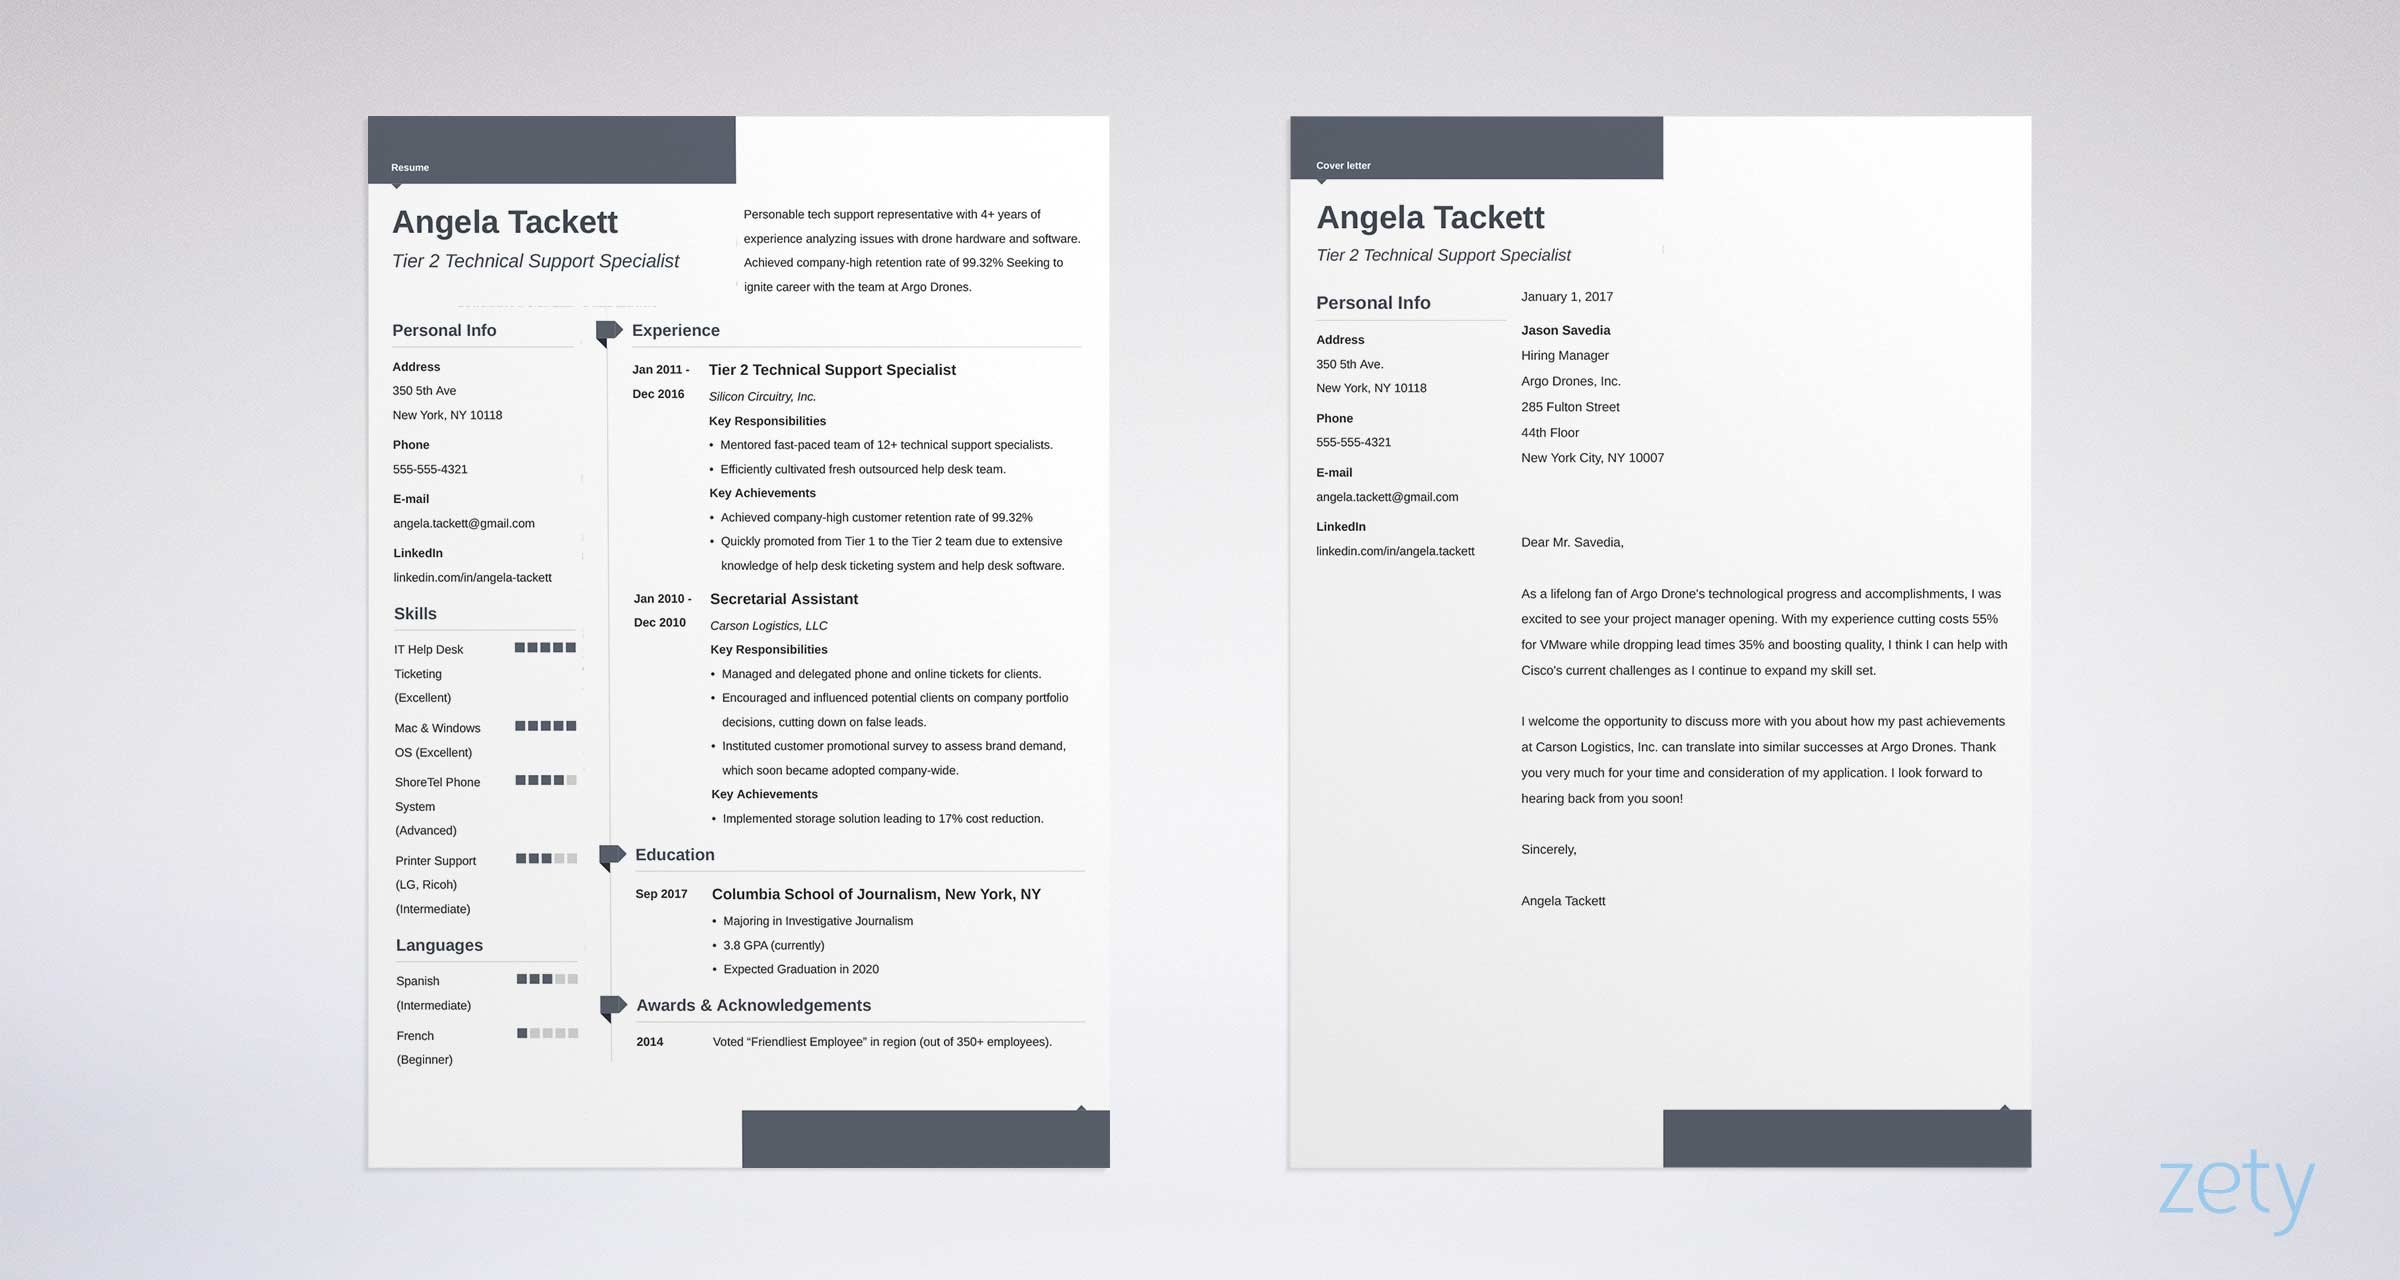 Free Resume Templates  17 Downloadable Resume Templates to Use elegant cover letter and resume templates